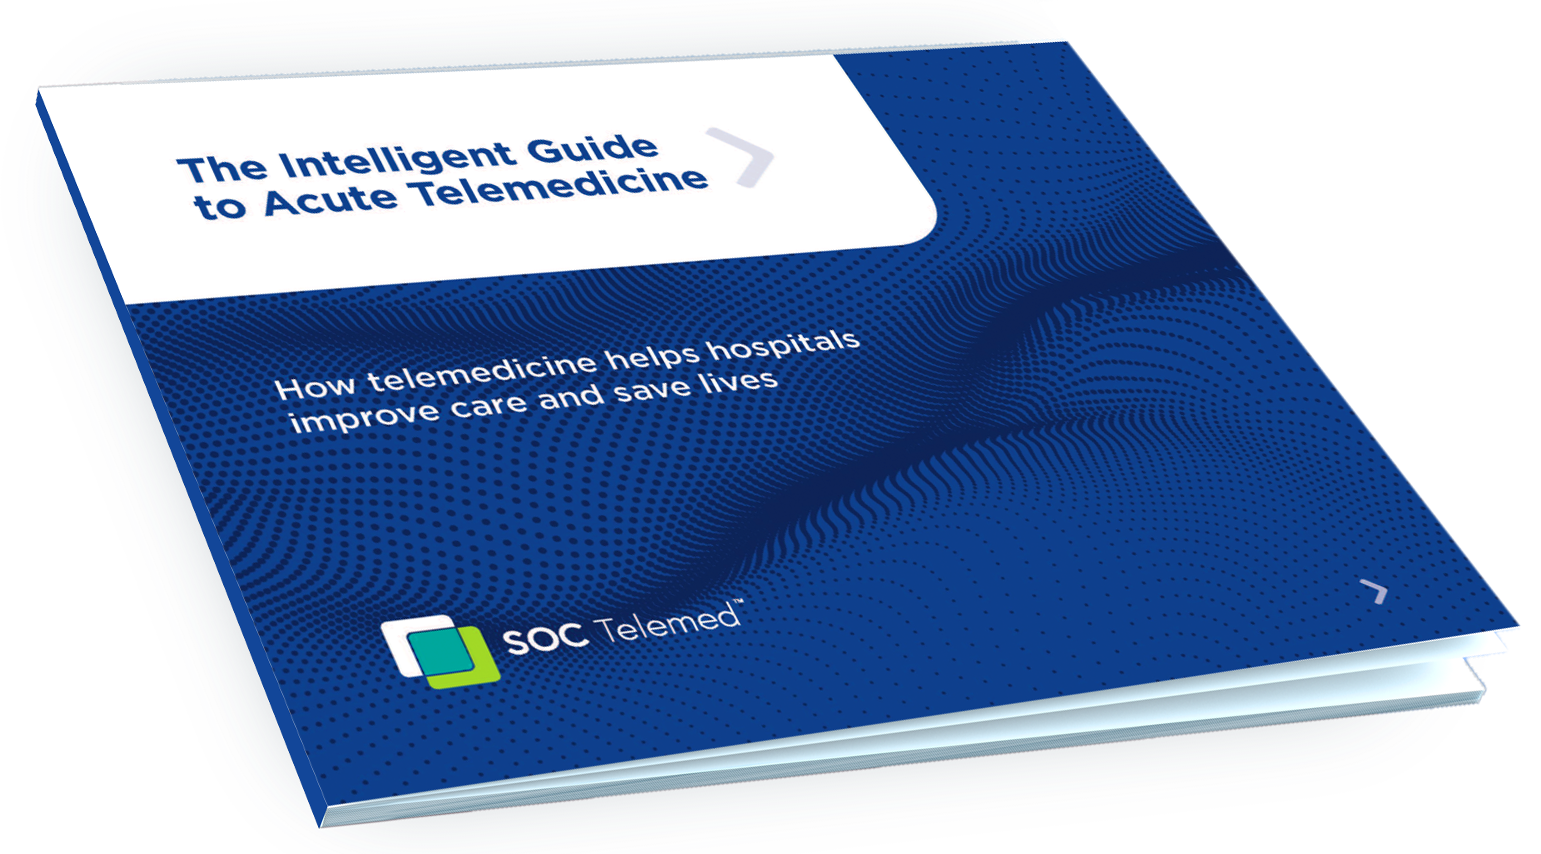 The_Intelligent_Guide_to_Acute_Telemedicine_eBook.png